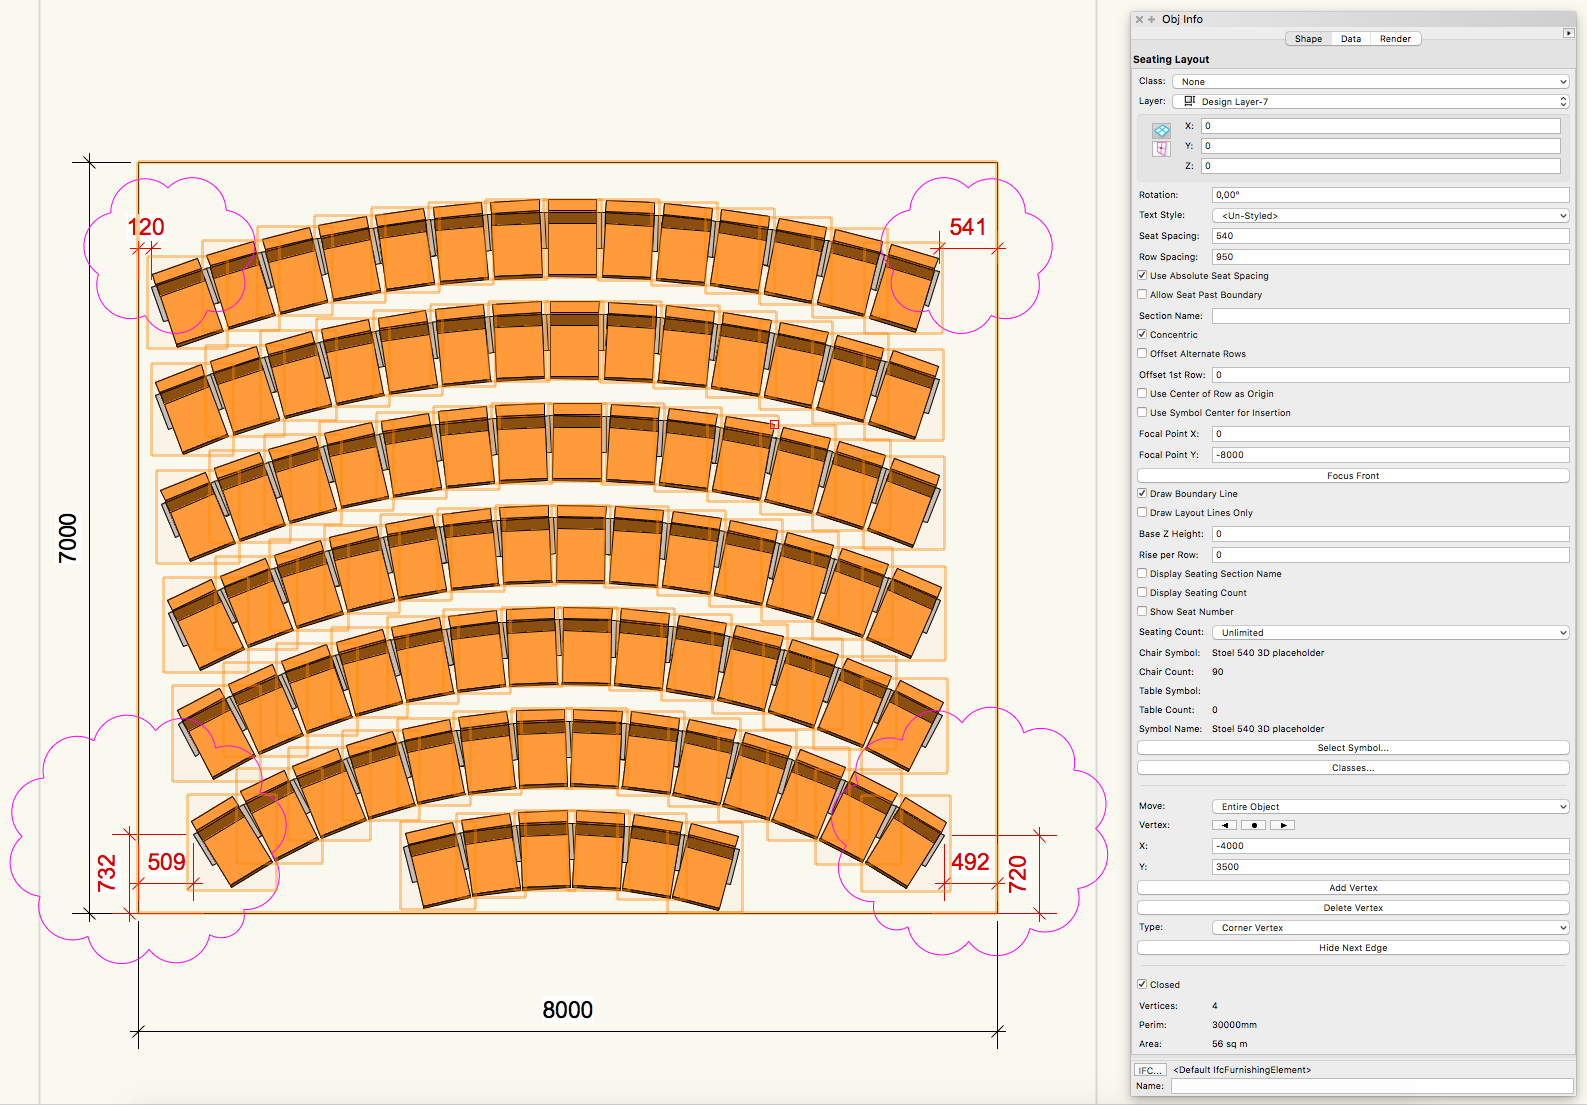 VW 2017 seating layout CSS concentric rows.png